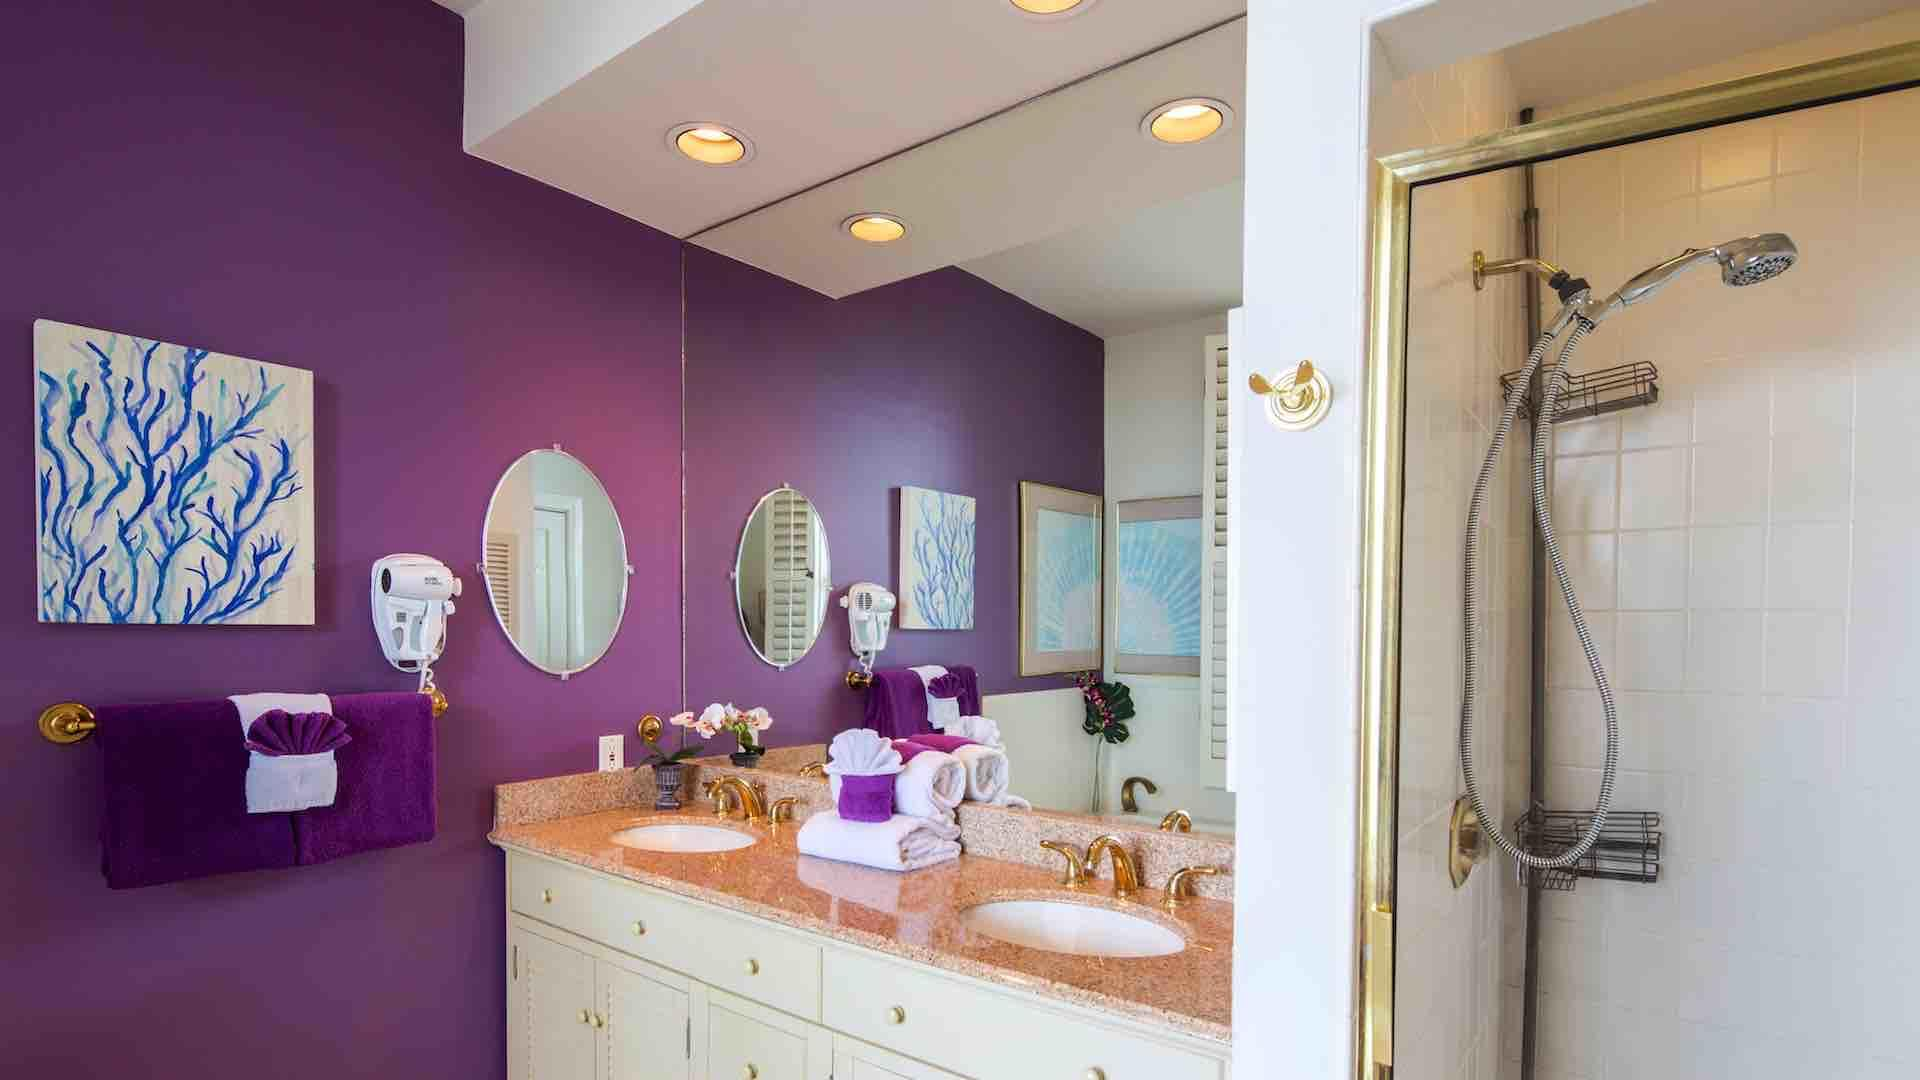 The master bathroom has twin vanities and a walk-in shower...